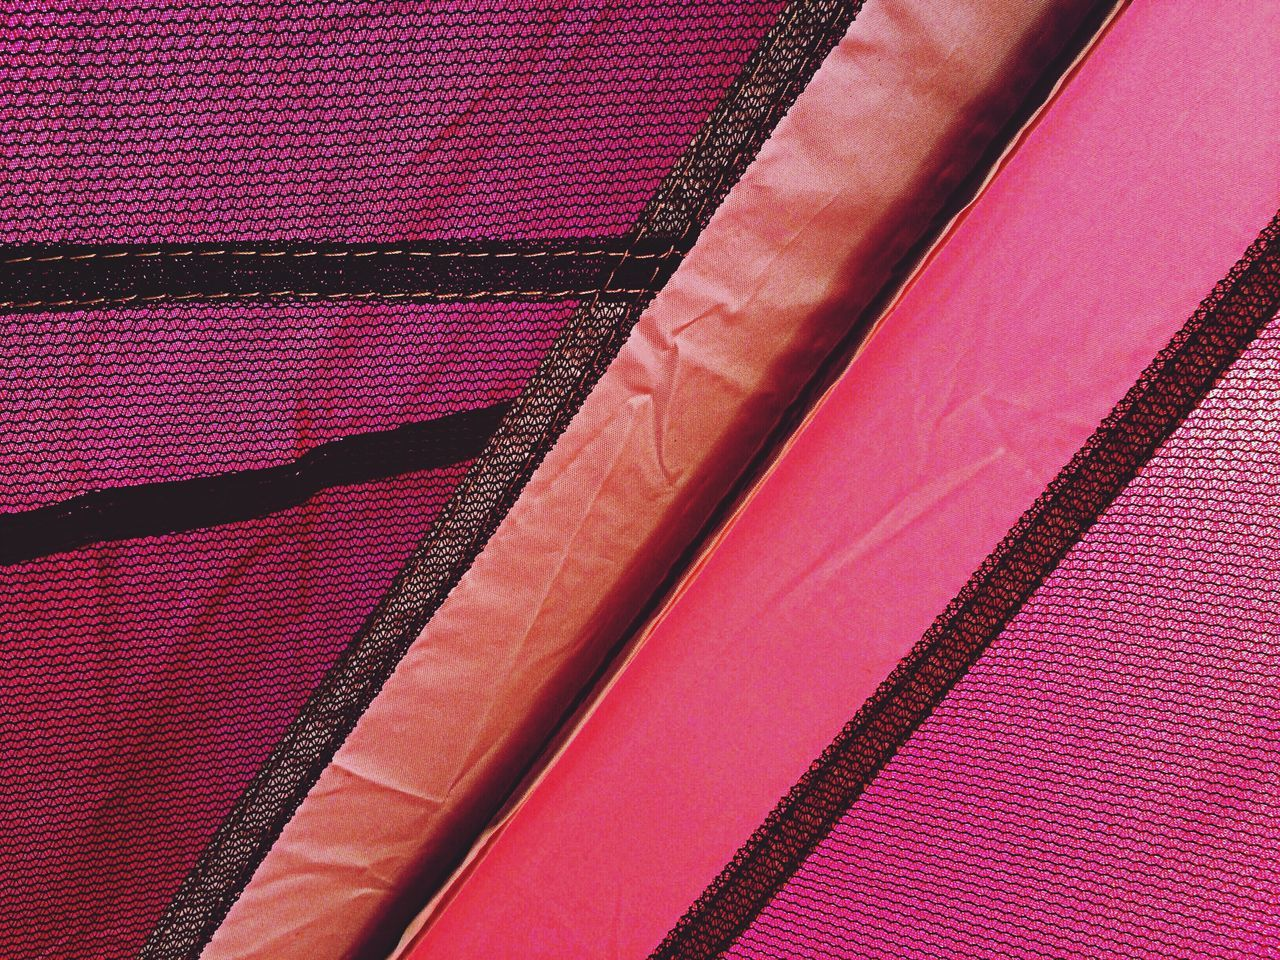 Close up of pink textile